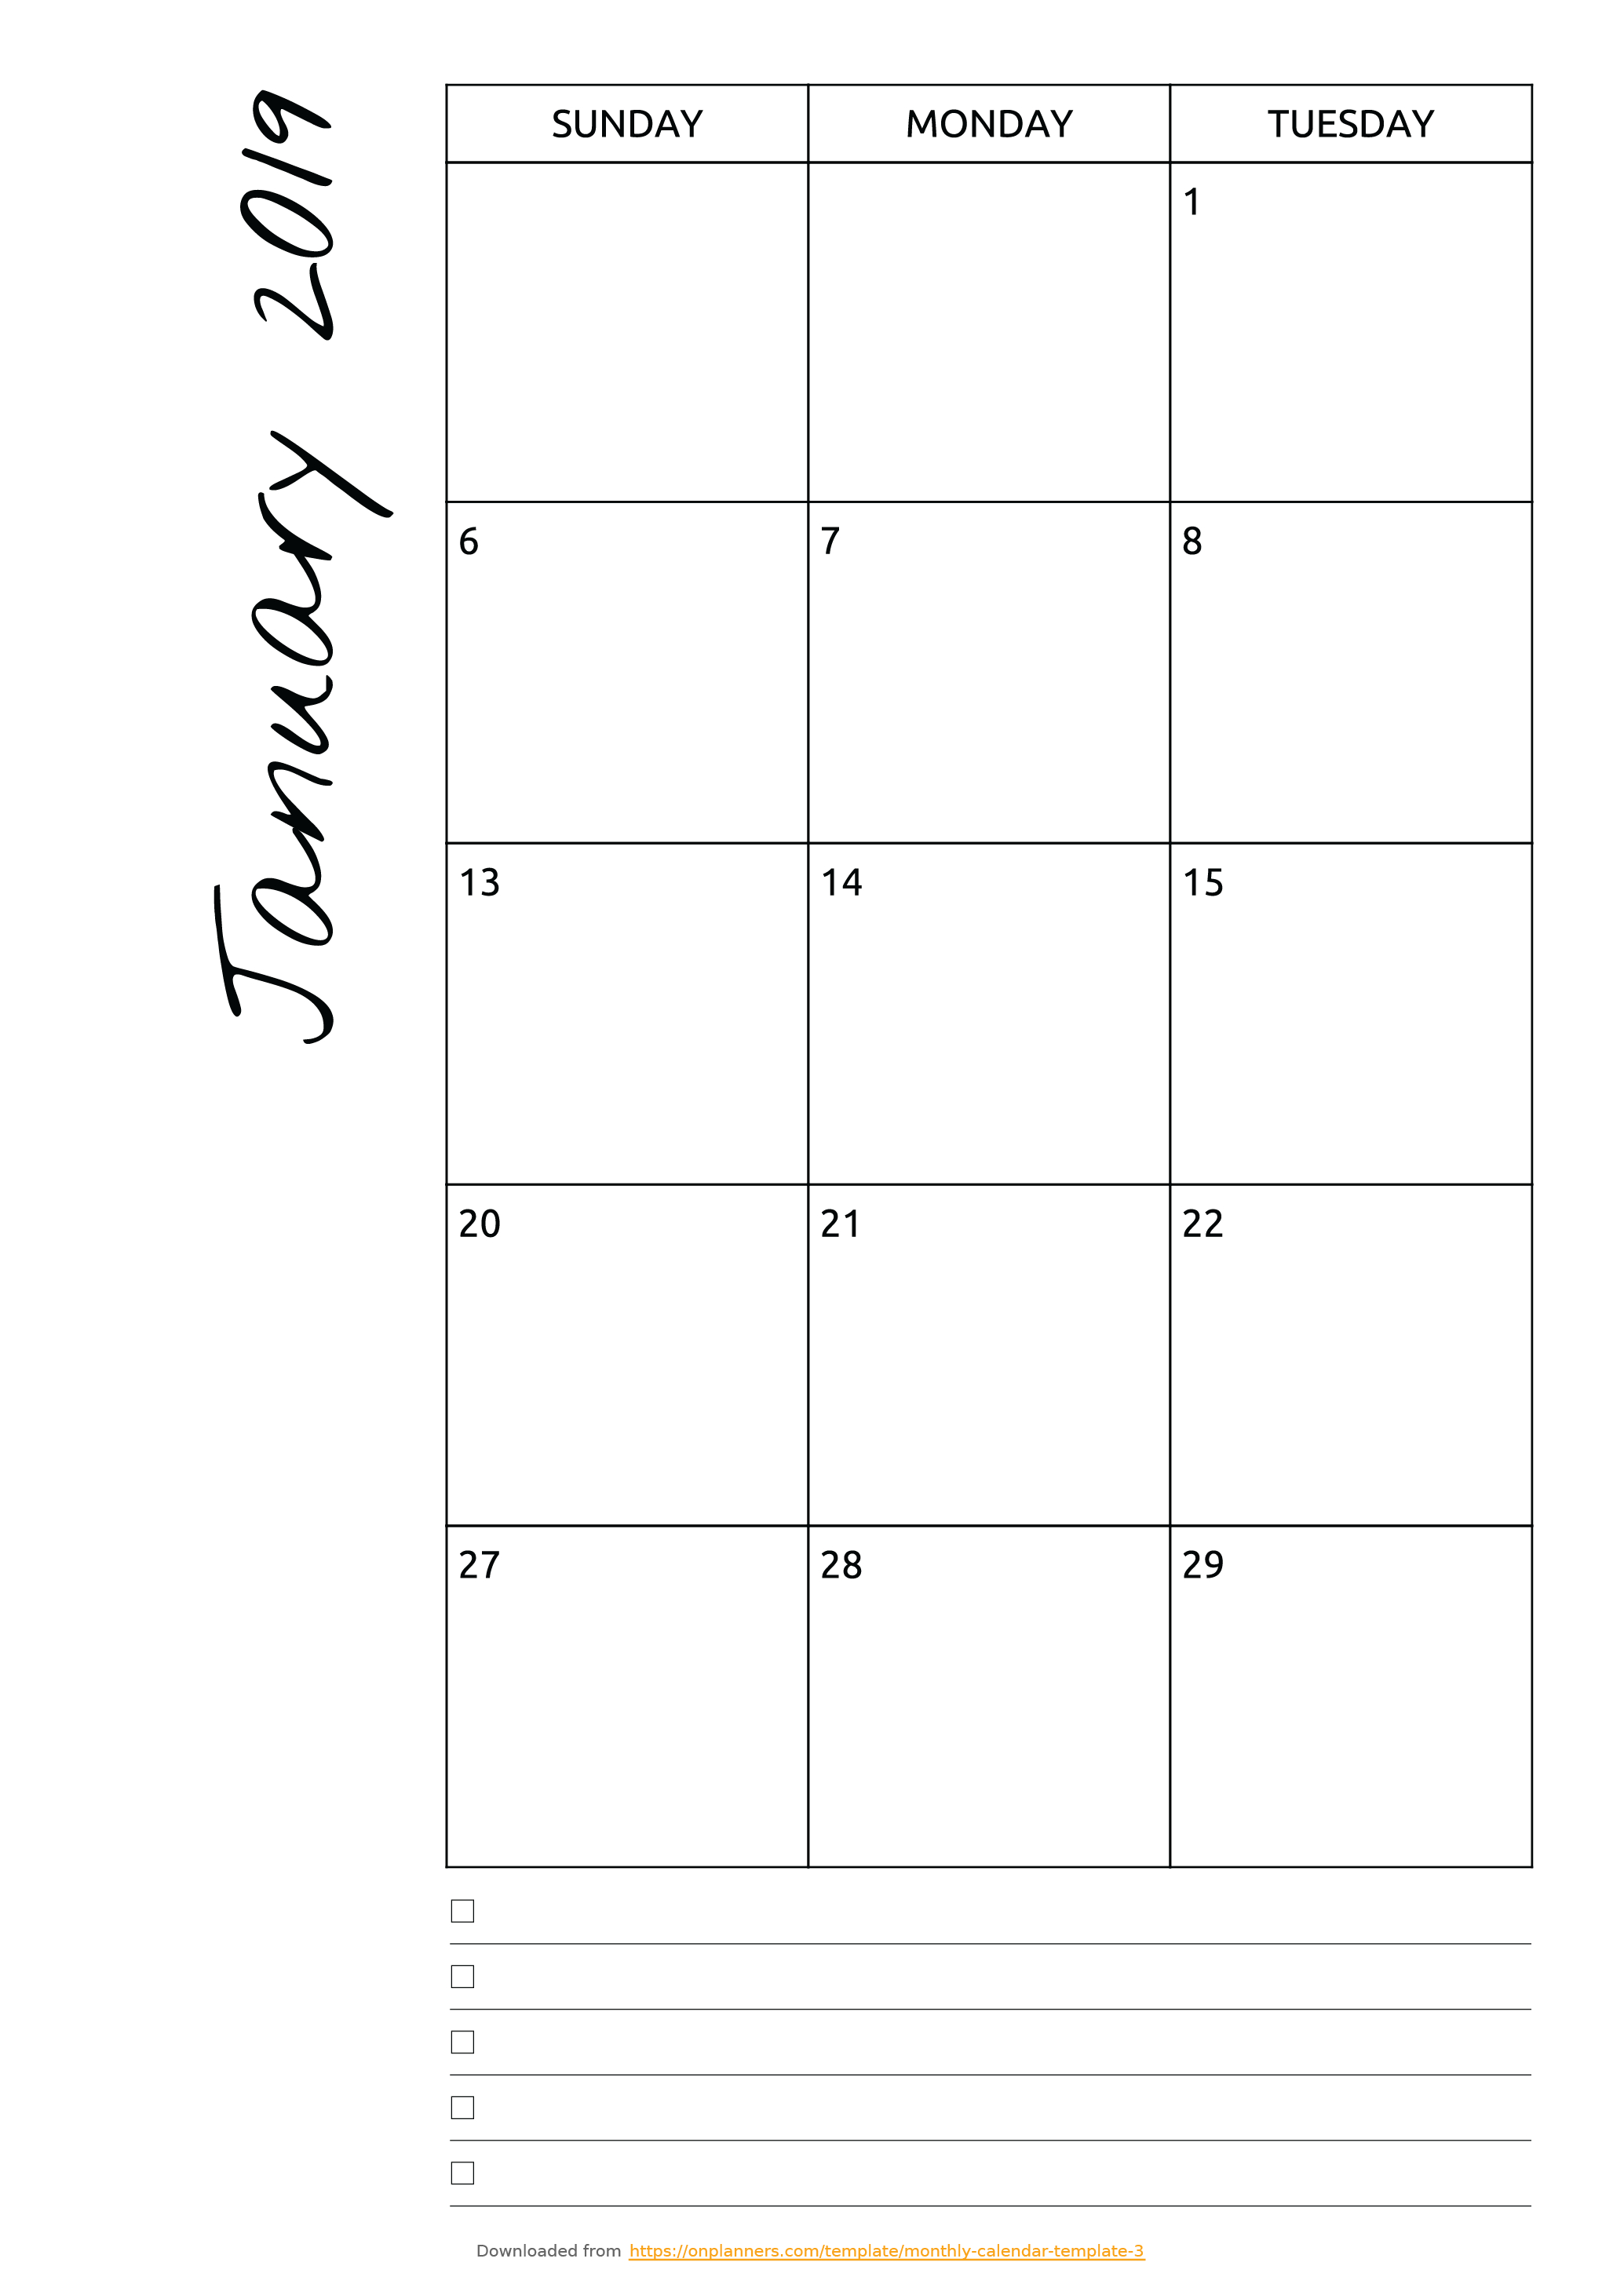 Free Printable Monthly Calendar With Notes Pdf Download with regard to Blank Printable Calendar By Month With Notes